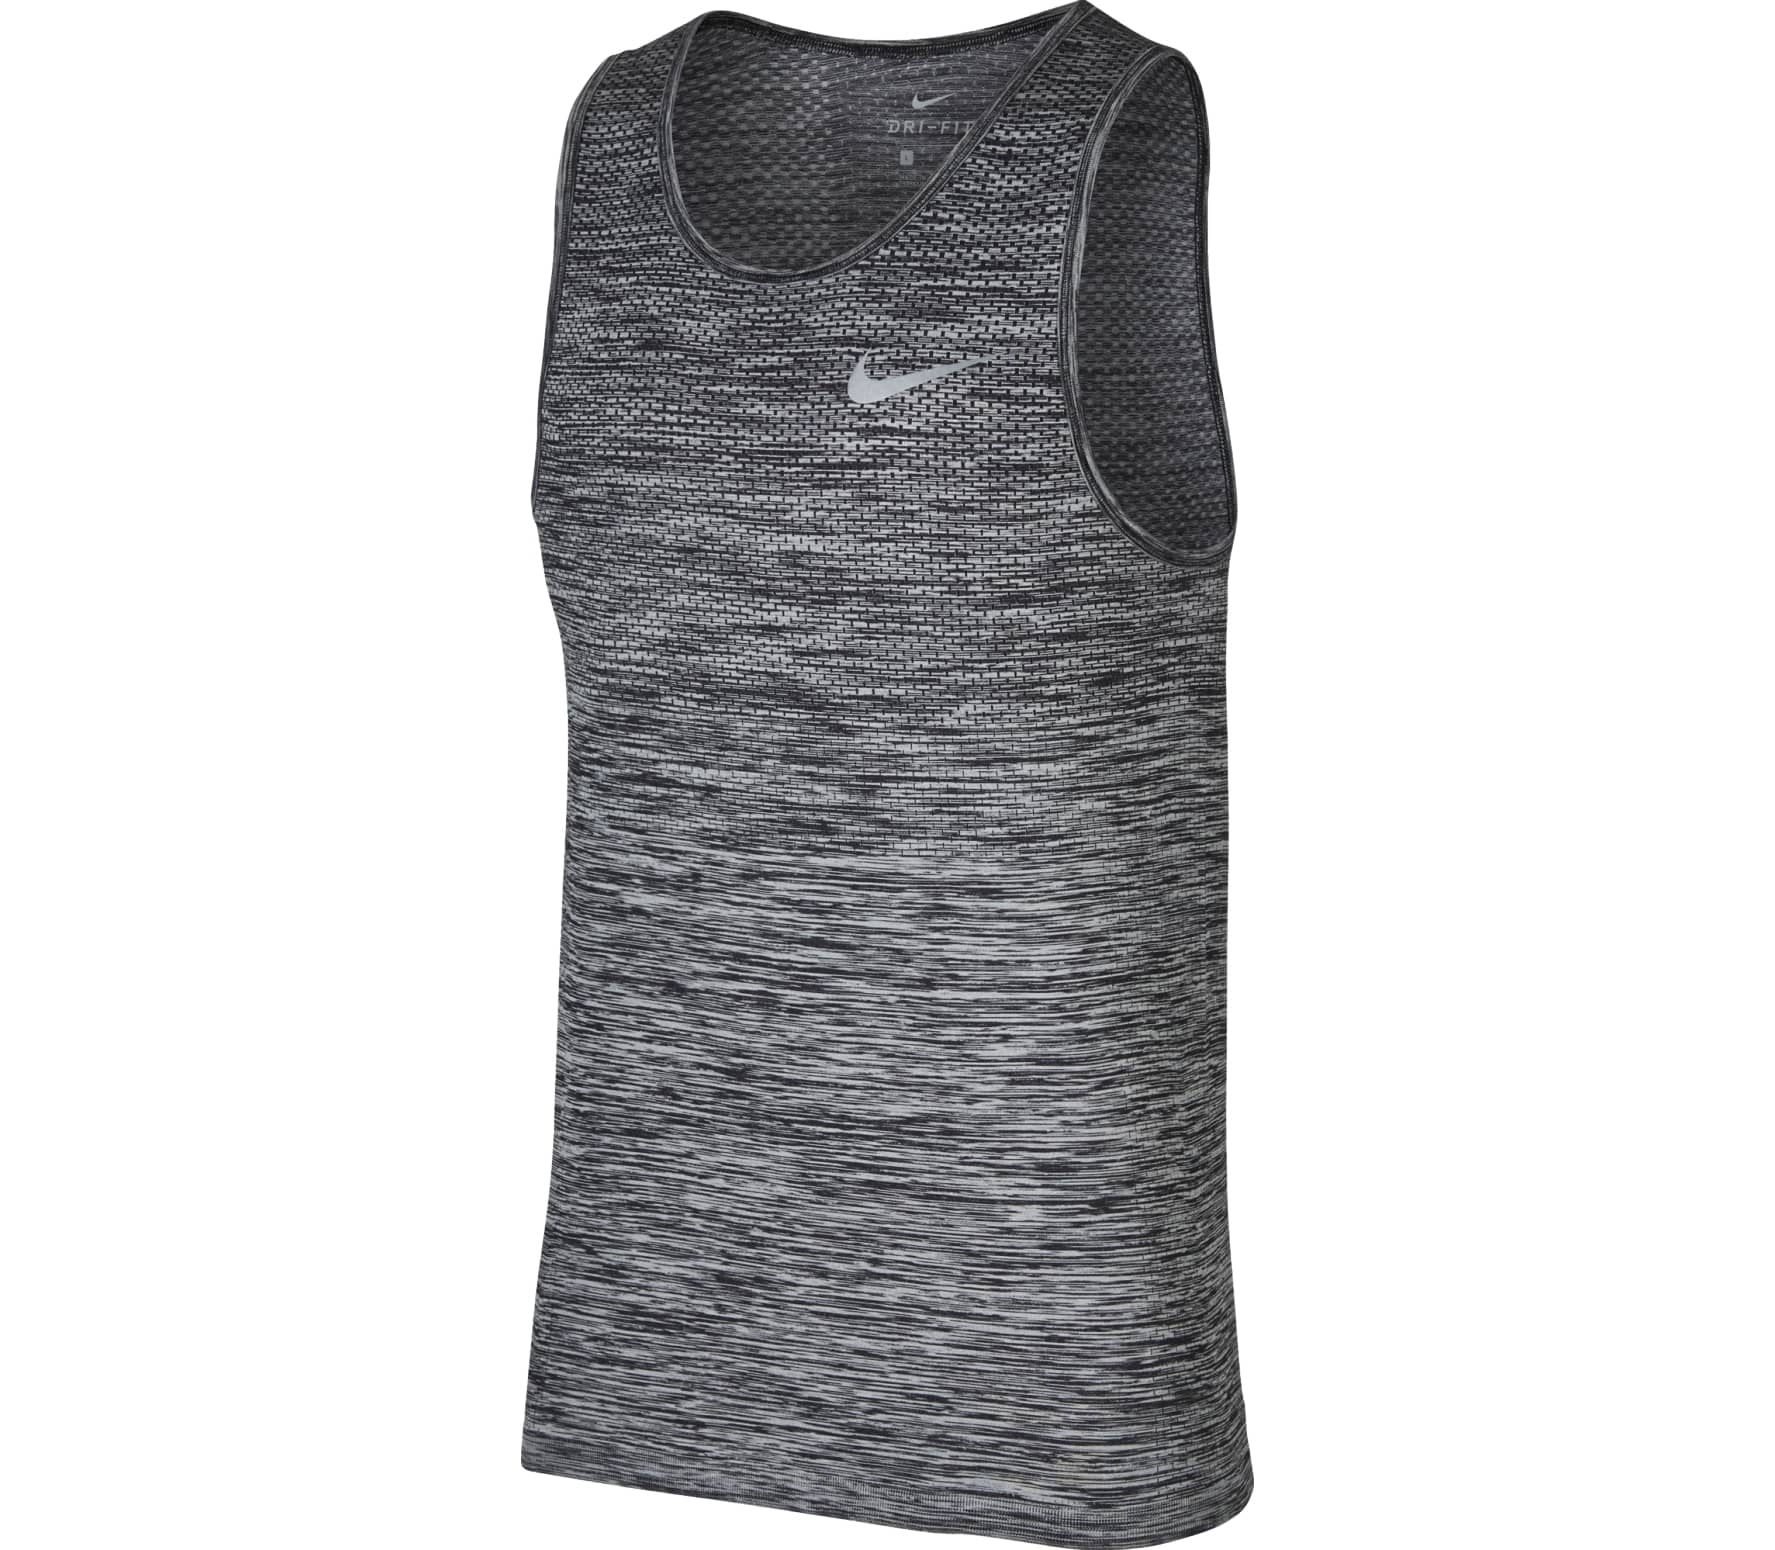 c792f88c9de0d Nike - Dri-Fit Knit men's running tank top top (black/grey) - buy it ...